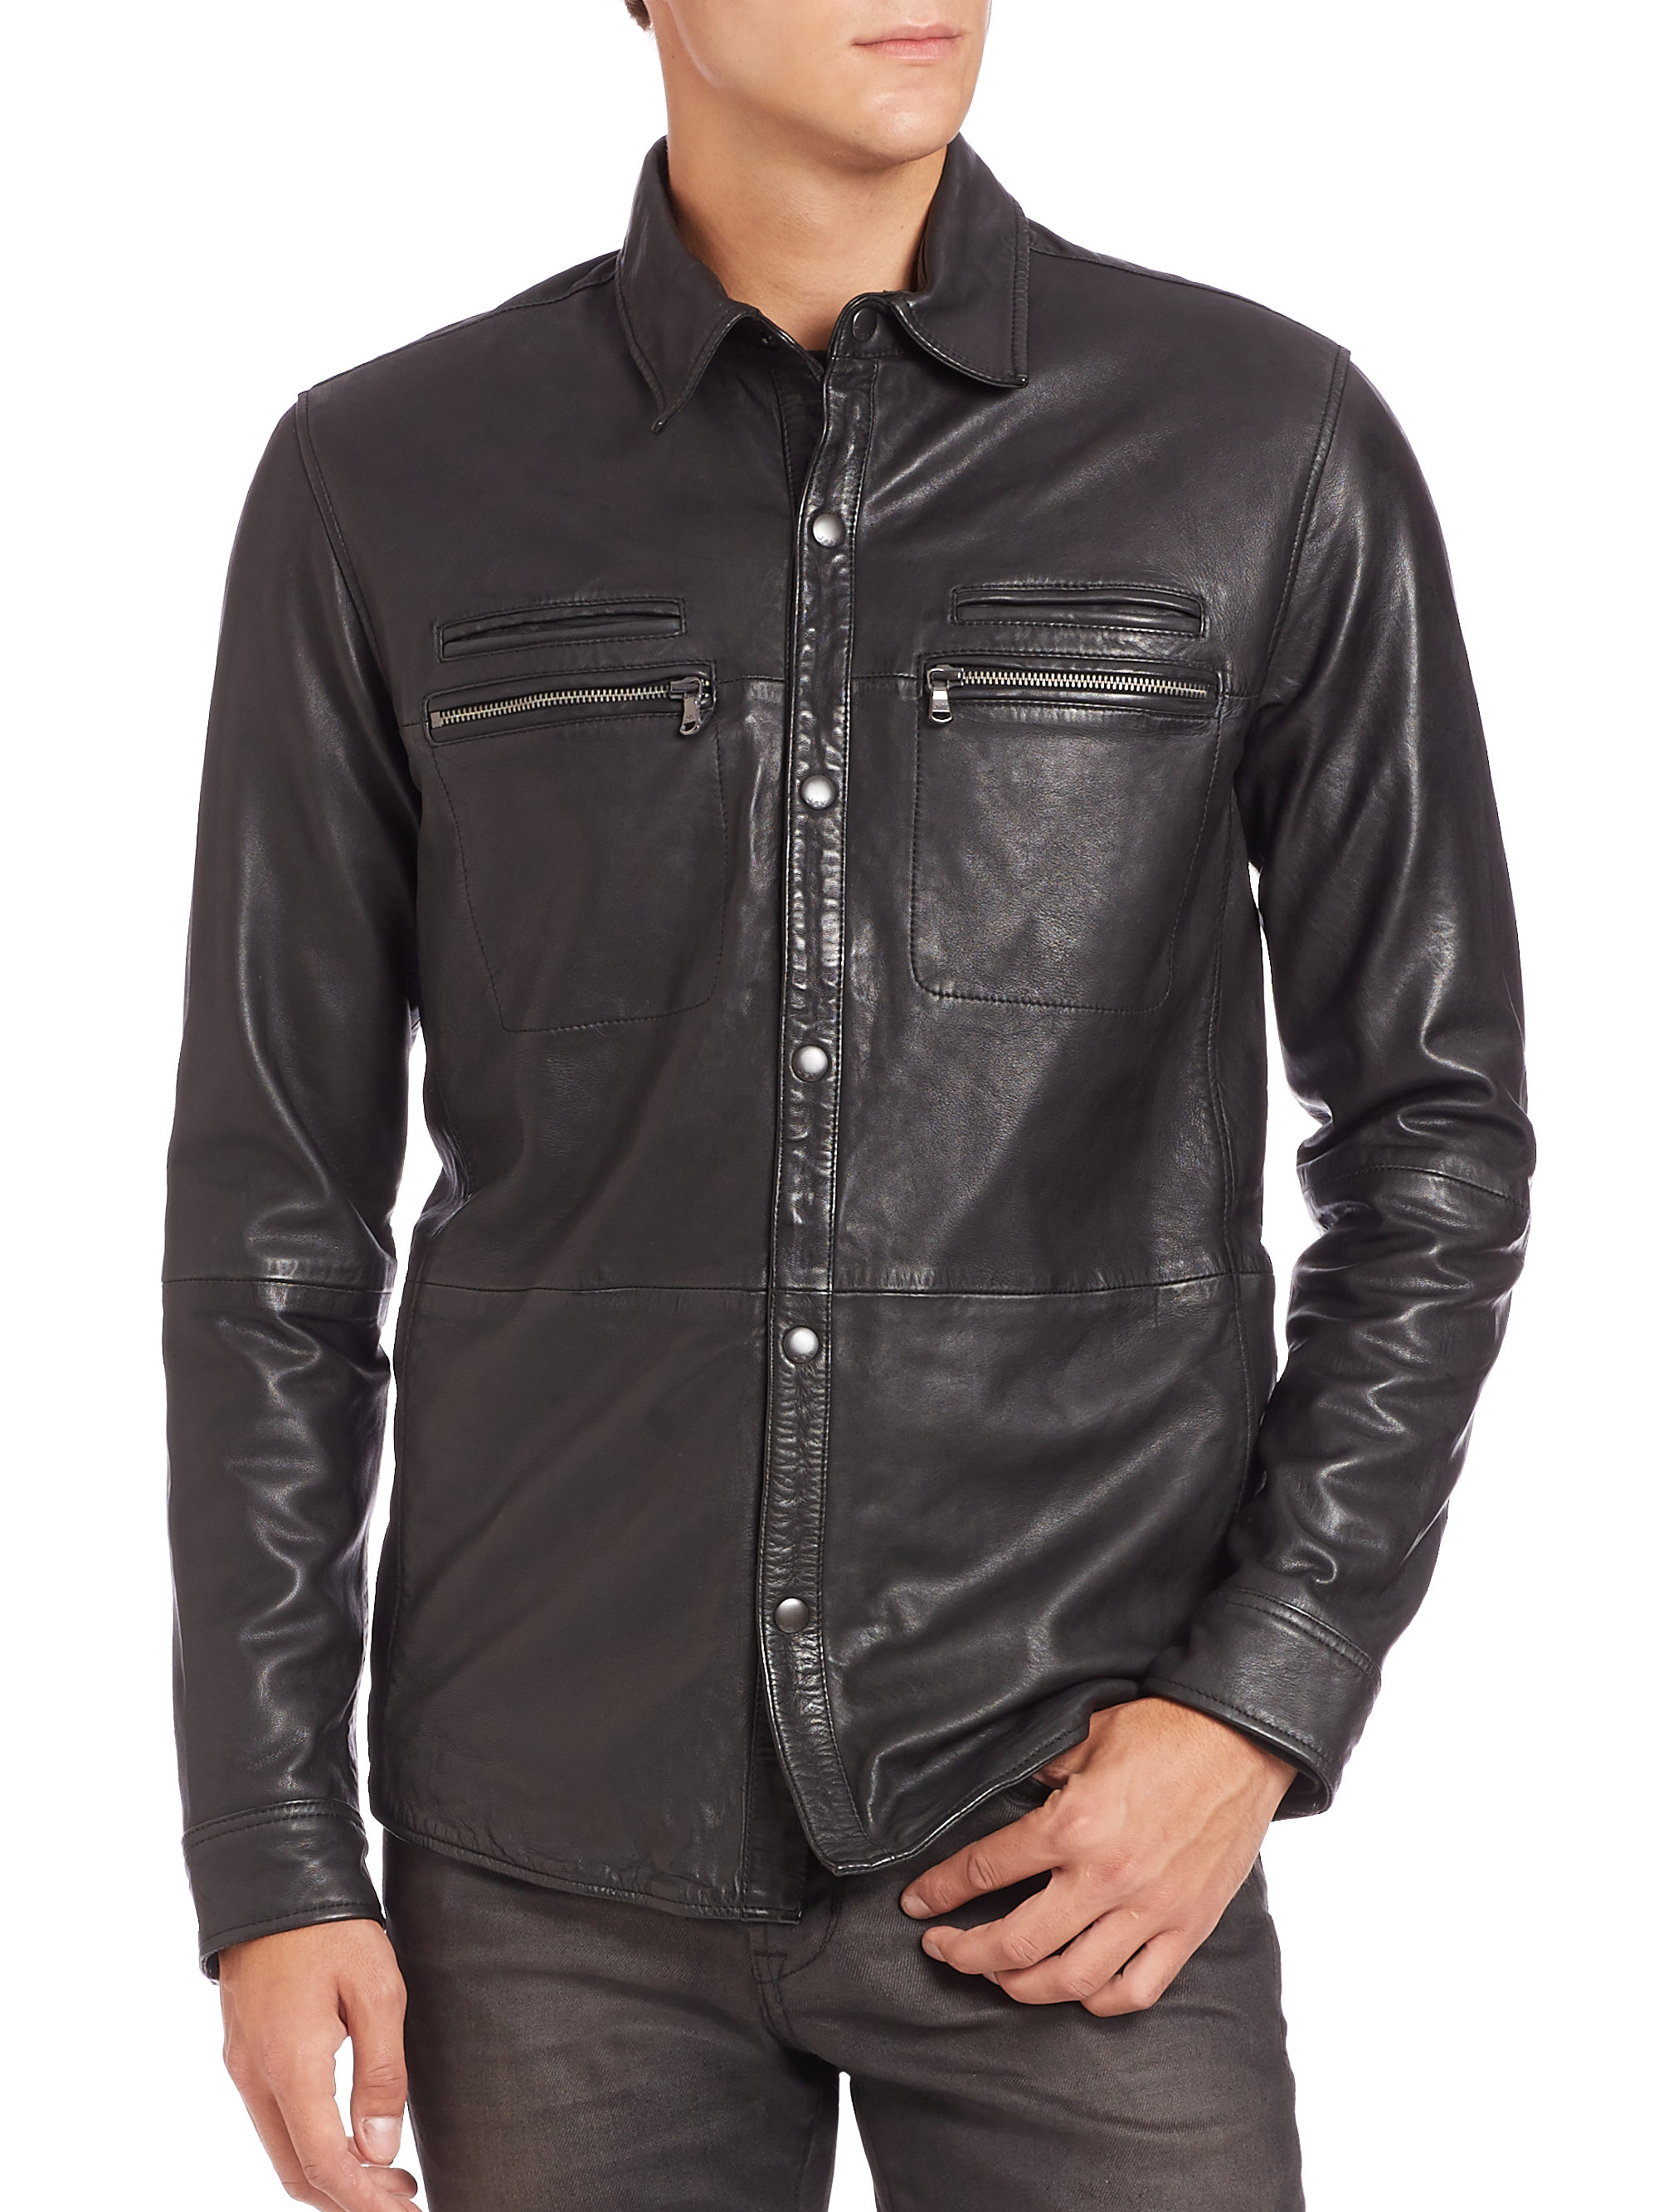 John varvatos leather shirt jacket in black for men lyst for Leather jacket and shirt